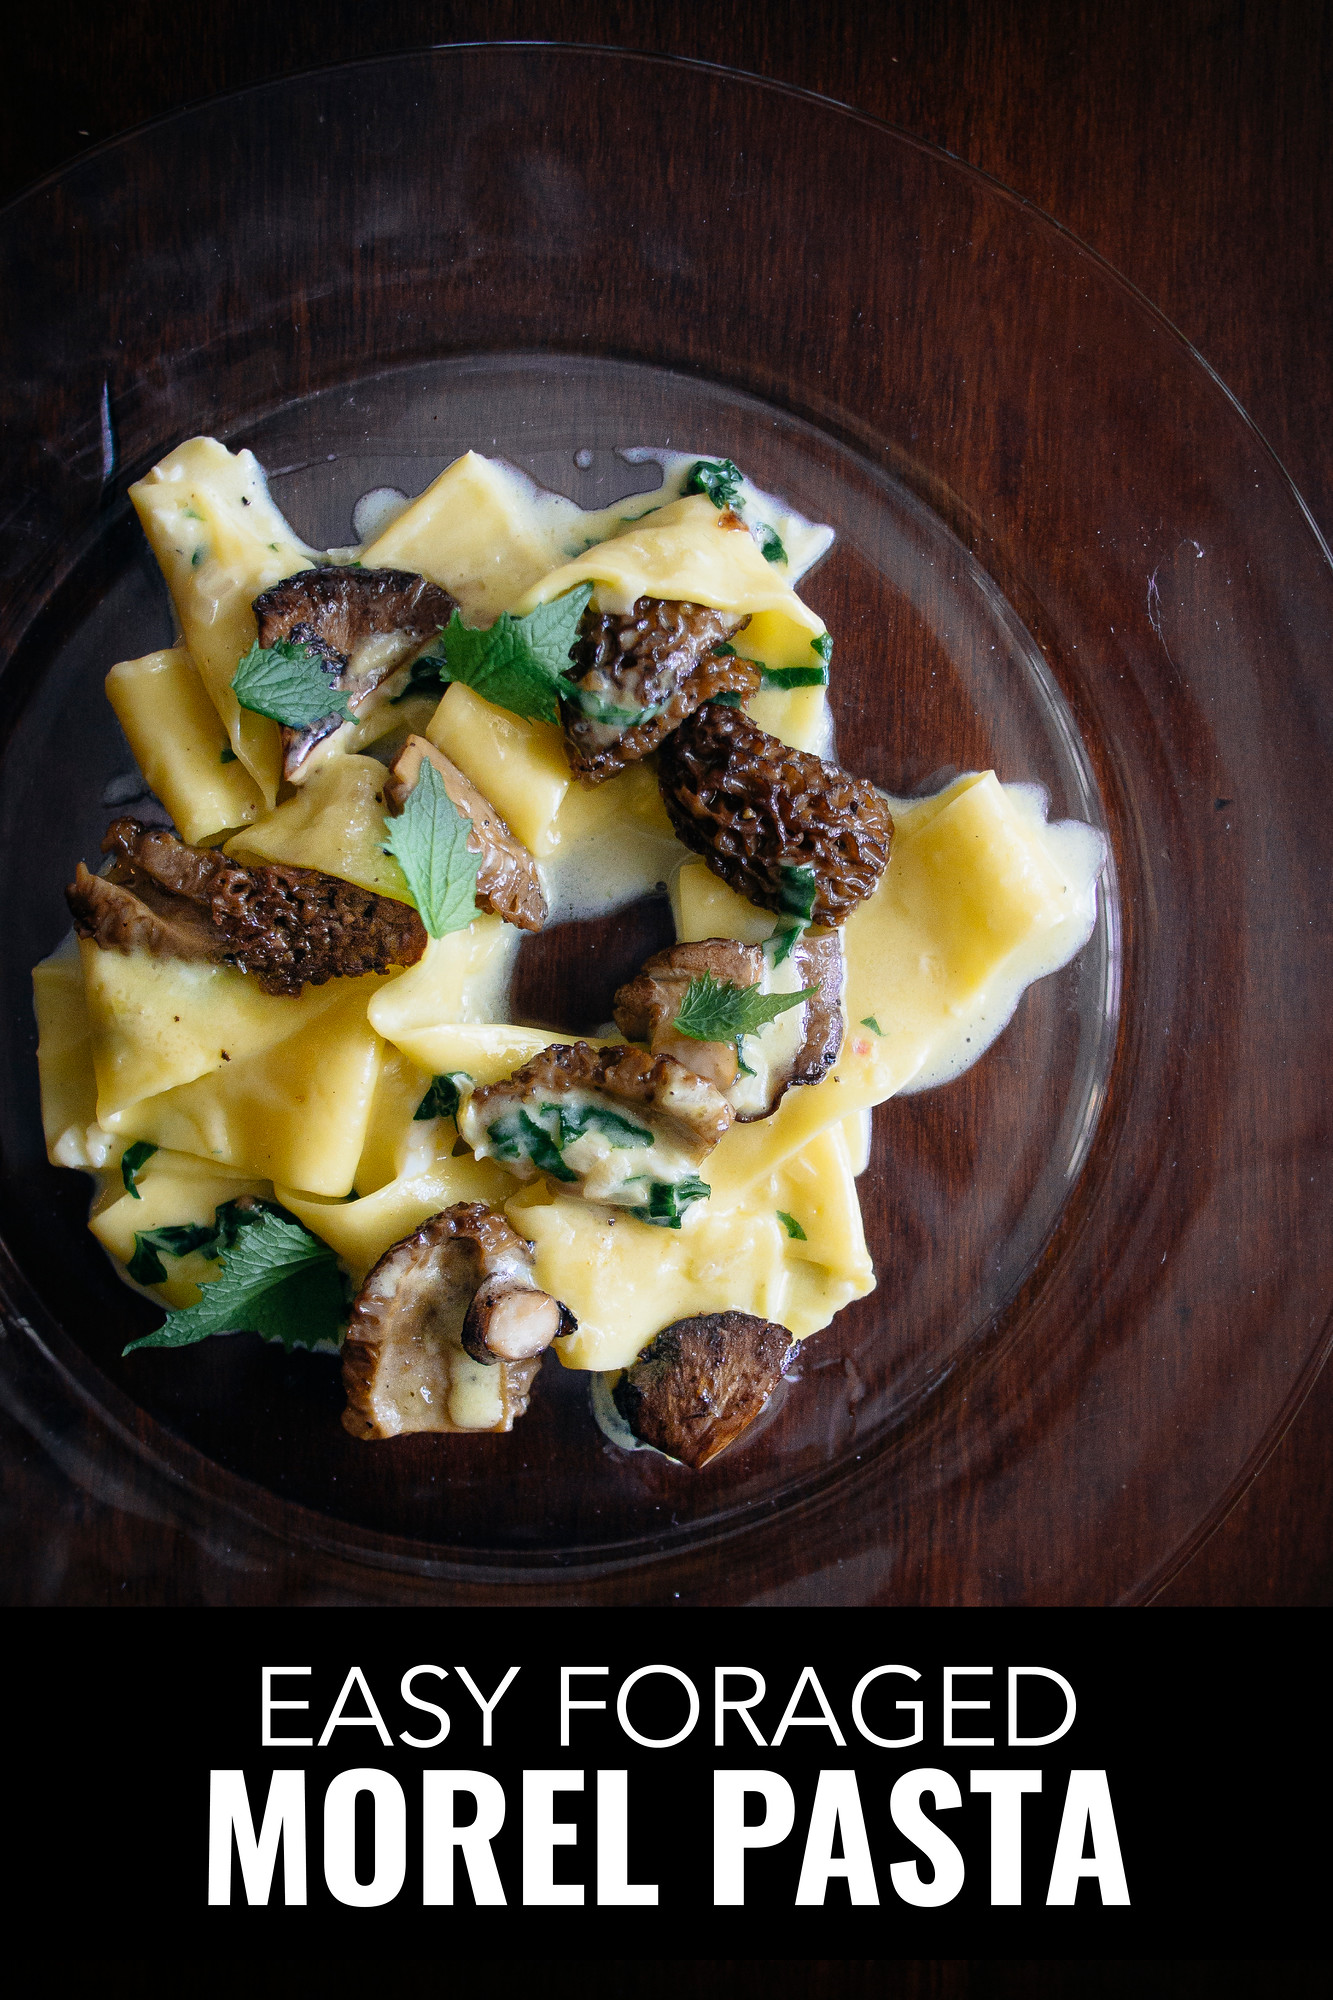 Easy morel pasta in less than 20 minutes. We capped off the day foraging mushrooms in Grey County making this easy but decadent morel pappardelle.